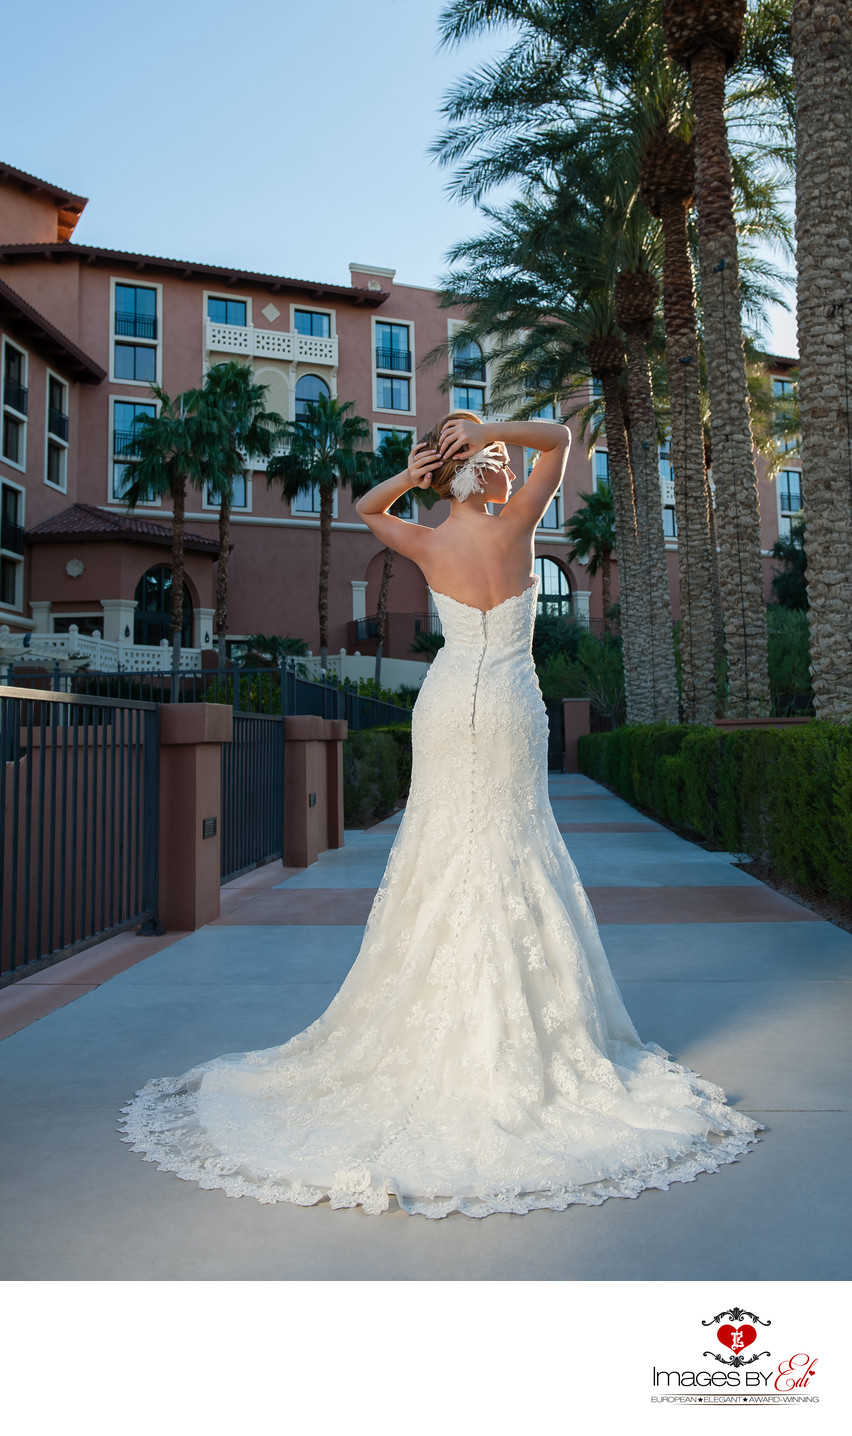 Bride at Westin Lake Las Vegas Resort & Spa | Vegas Wedding Photographer | Images by EDI